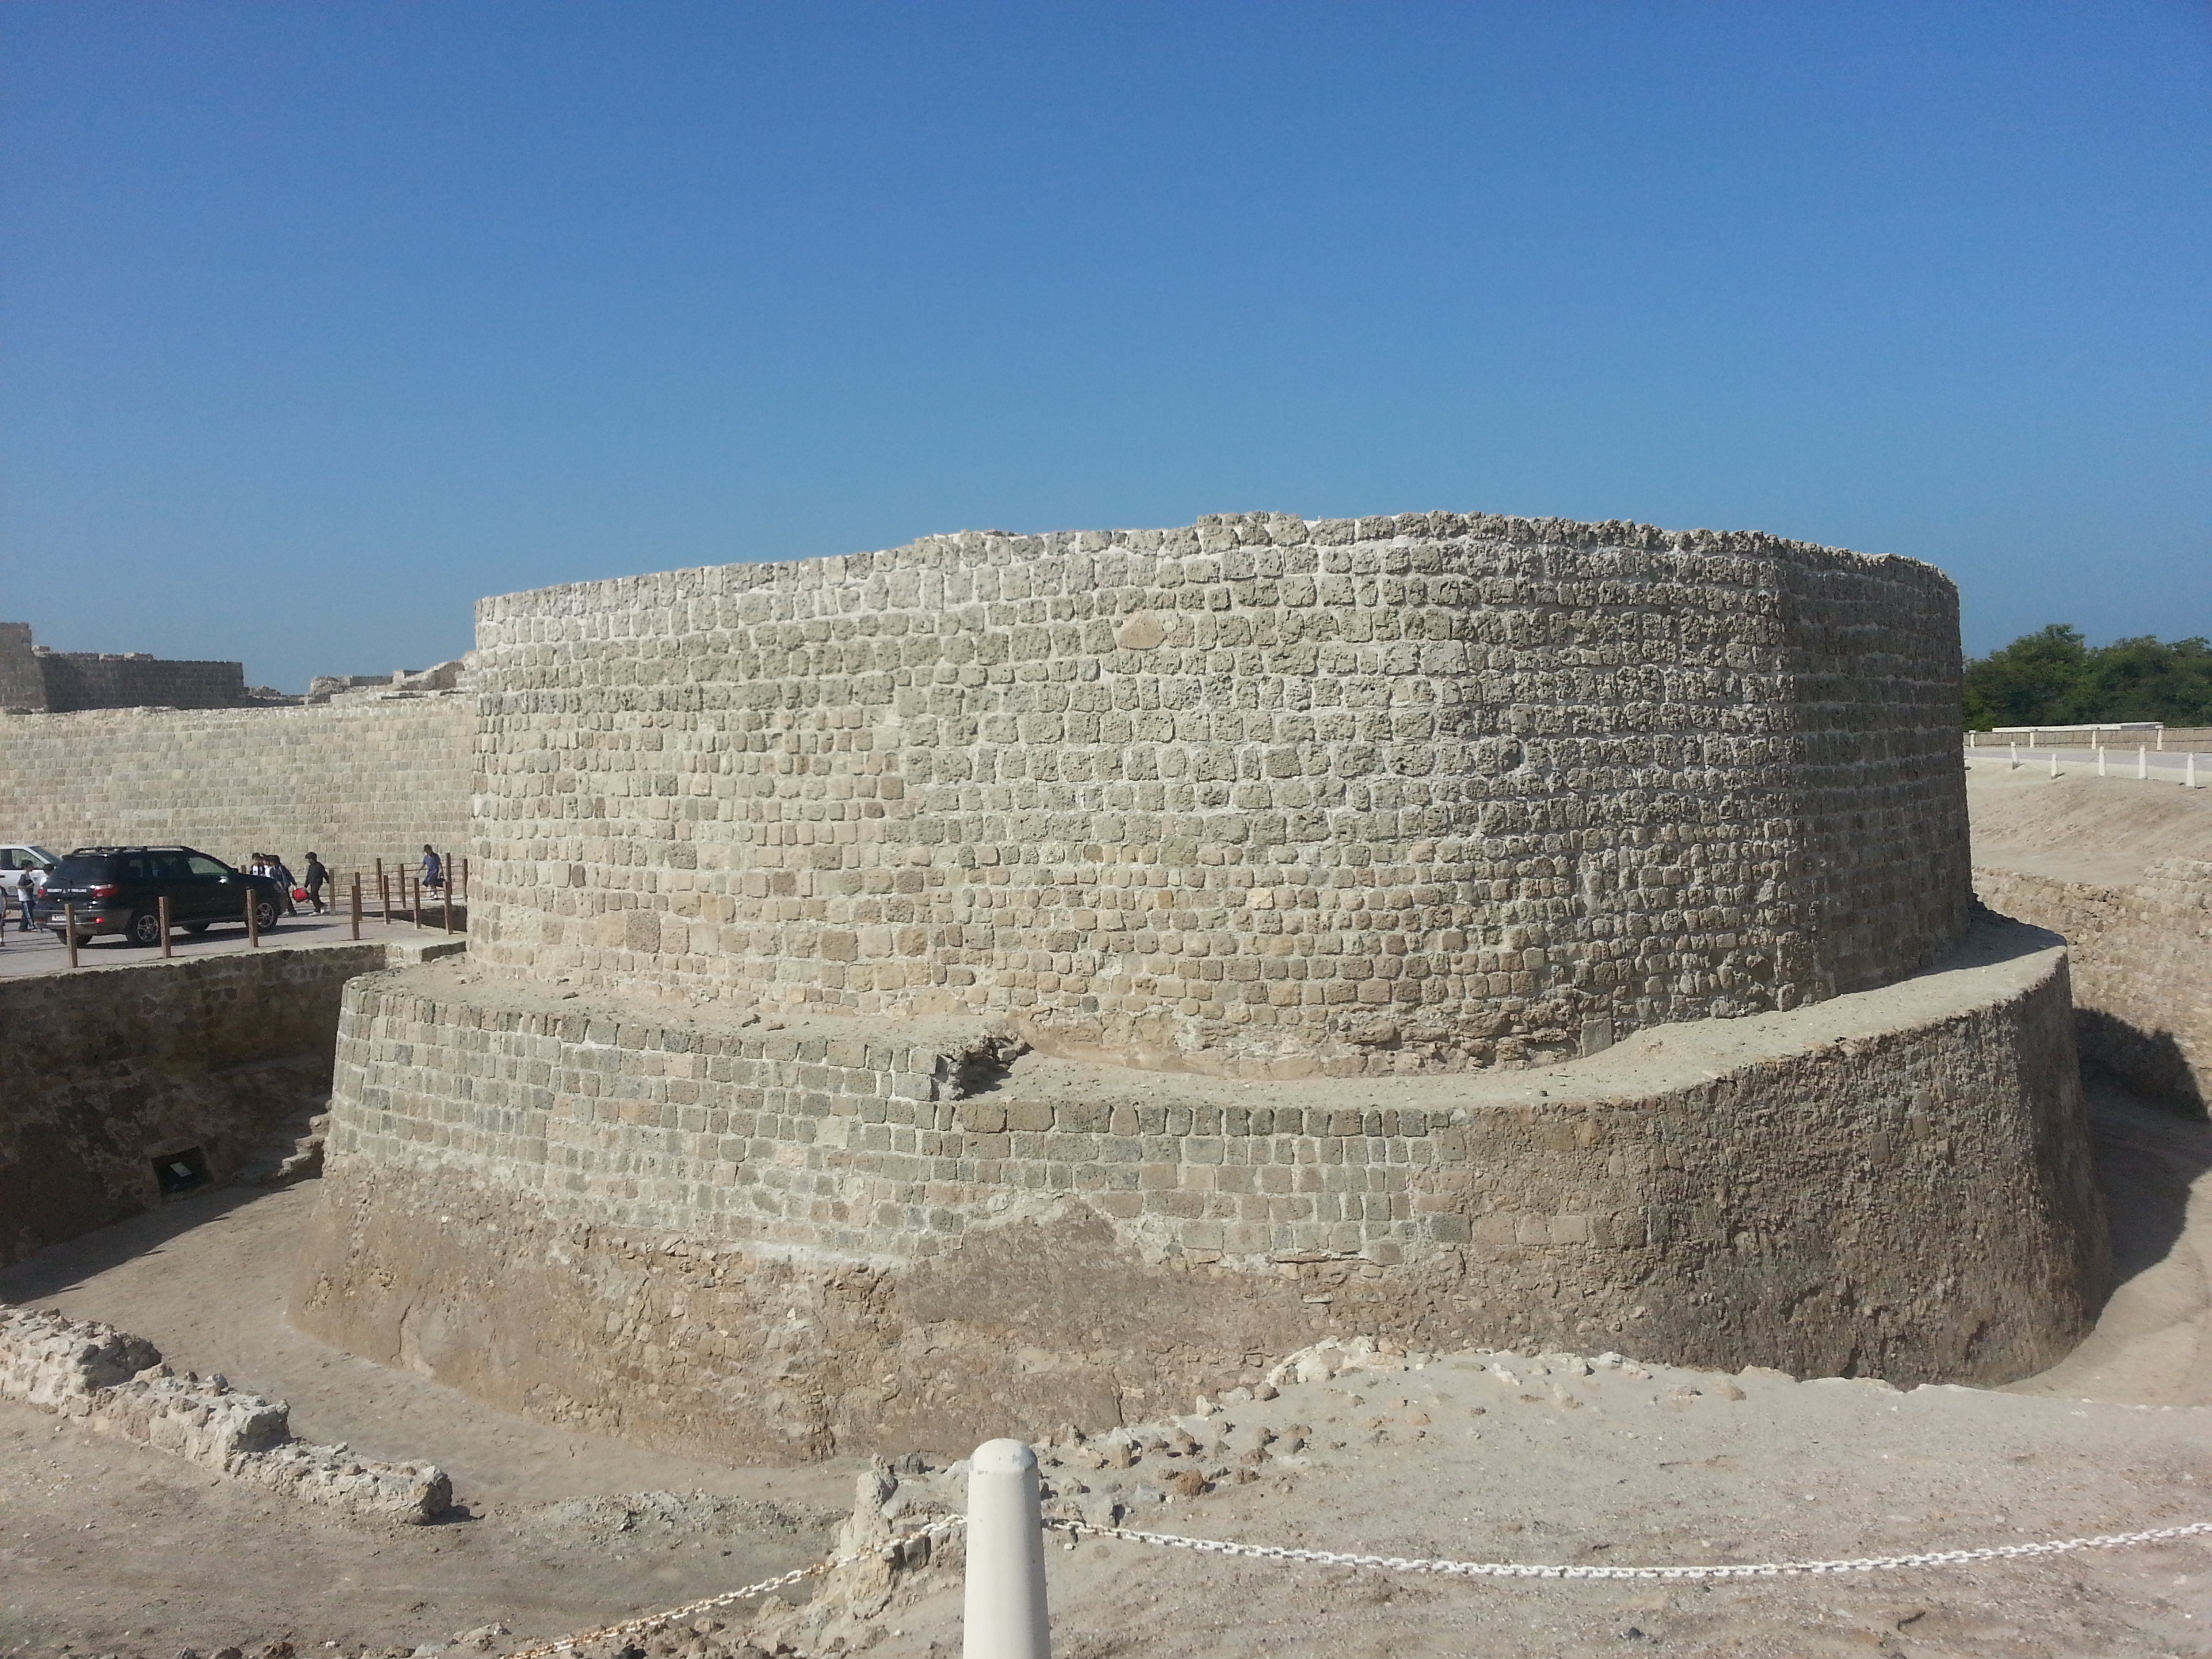 Qal'at Al Bahrain - Bahrain Fort